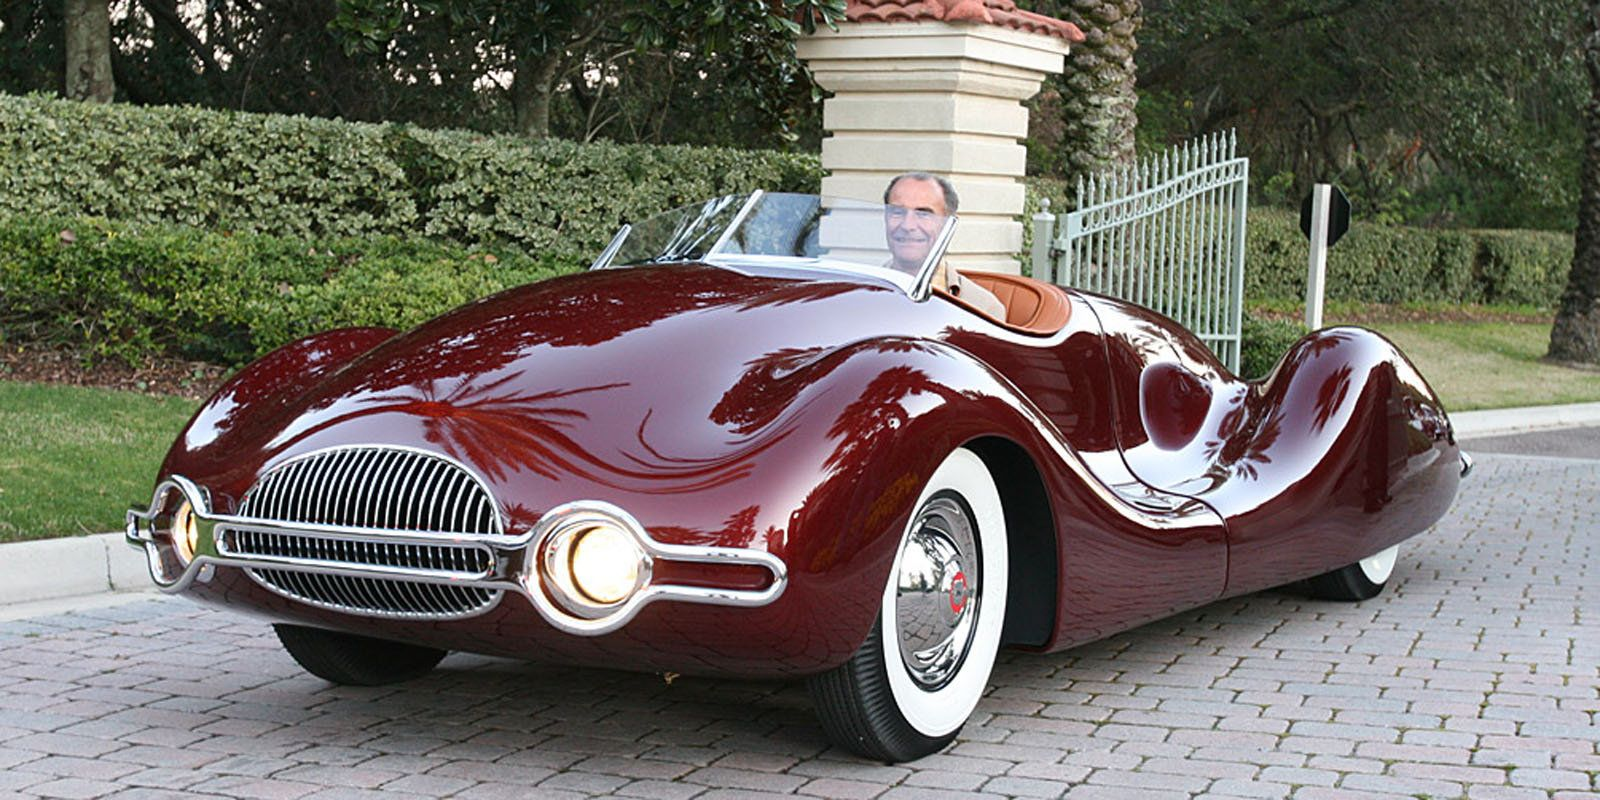 Power Cars Buick Streamliner By Norman Timbs